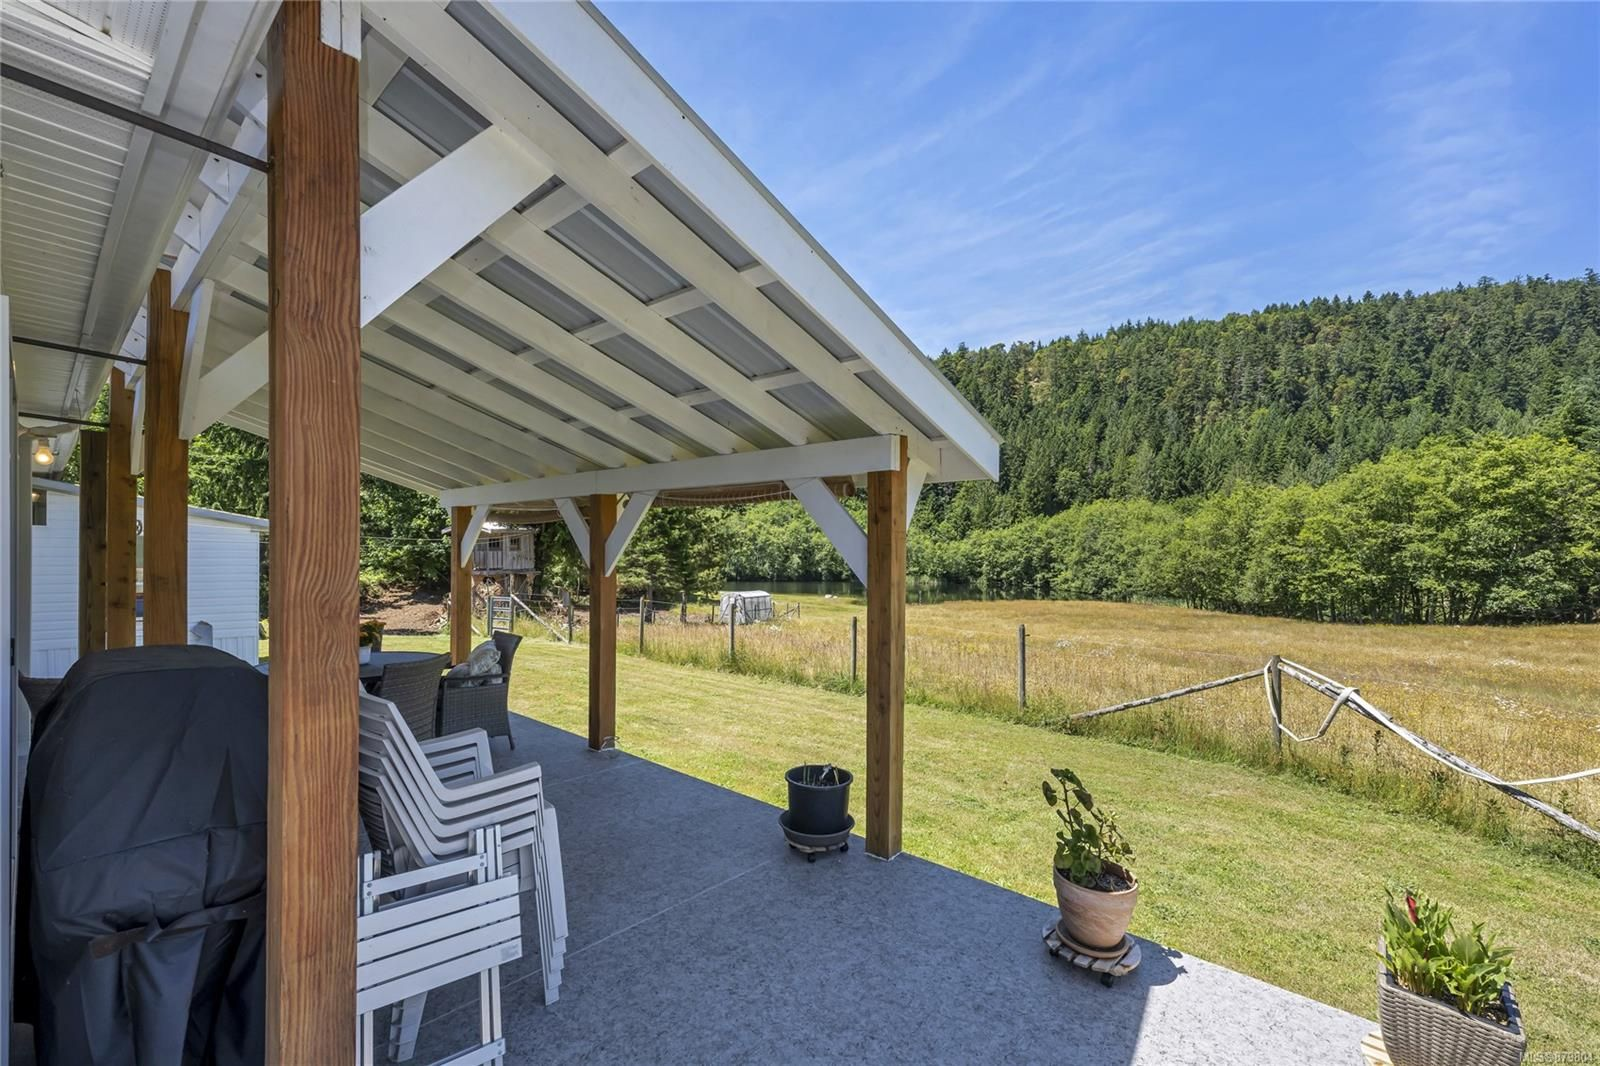 Photo 21: Photos: 3596 Riverside Rd in : ML Cobble Hill Manufactured Home for sale (Malahat & Area)  : MLS®# 879804